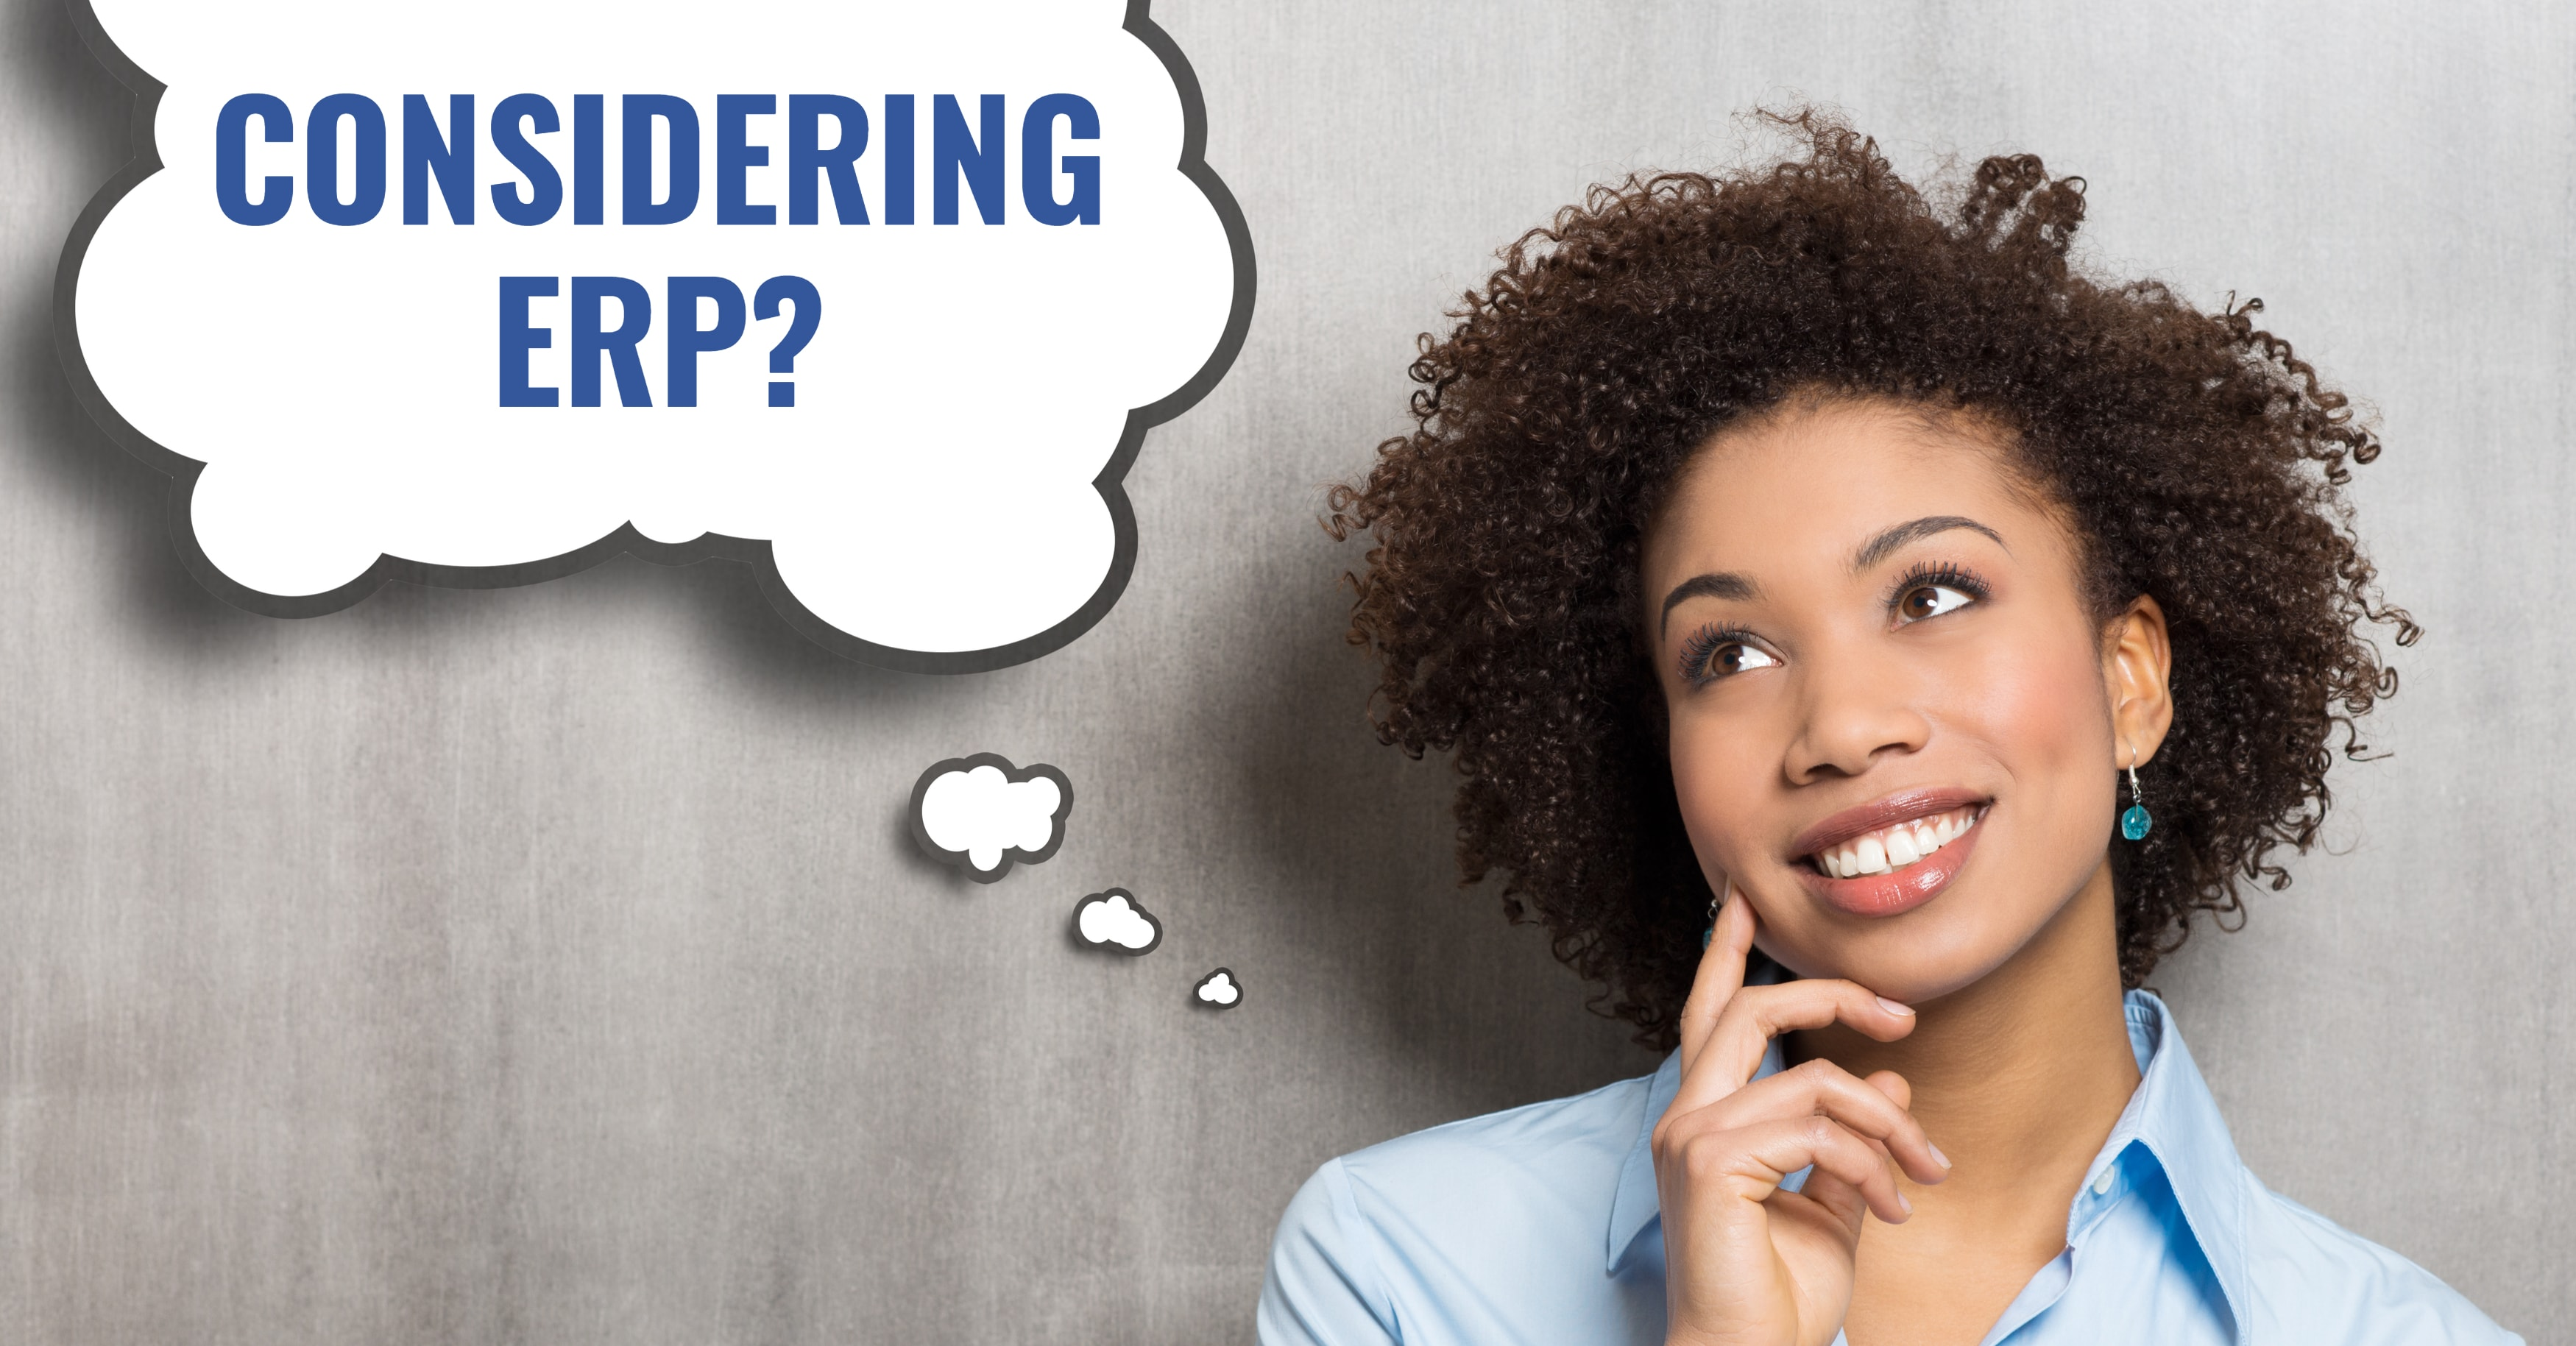 Considering ERP? Here's What You Need to Know